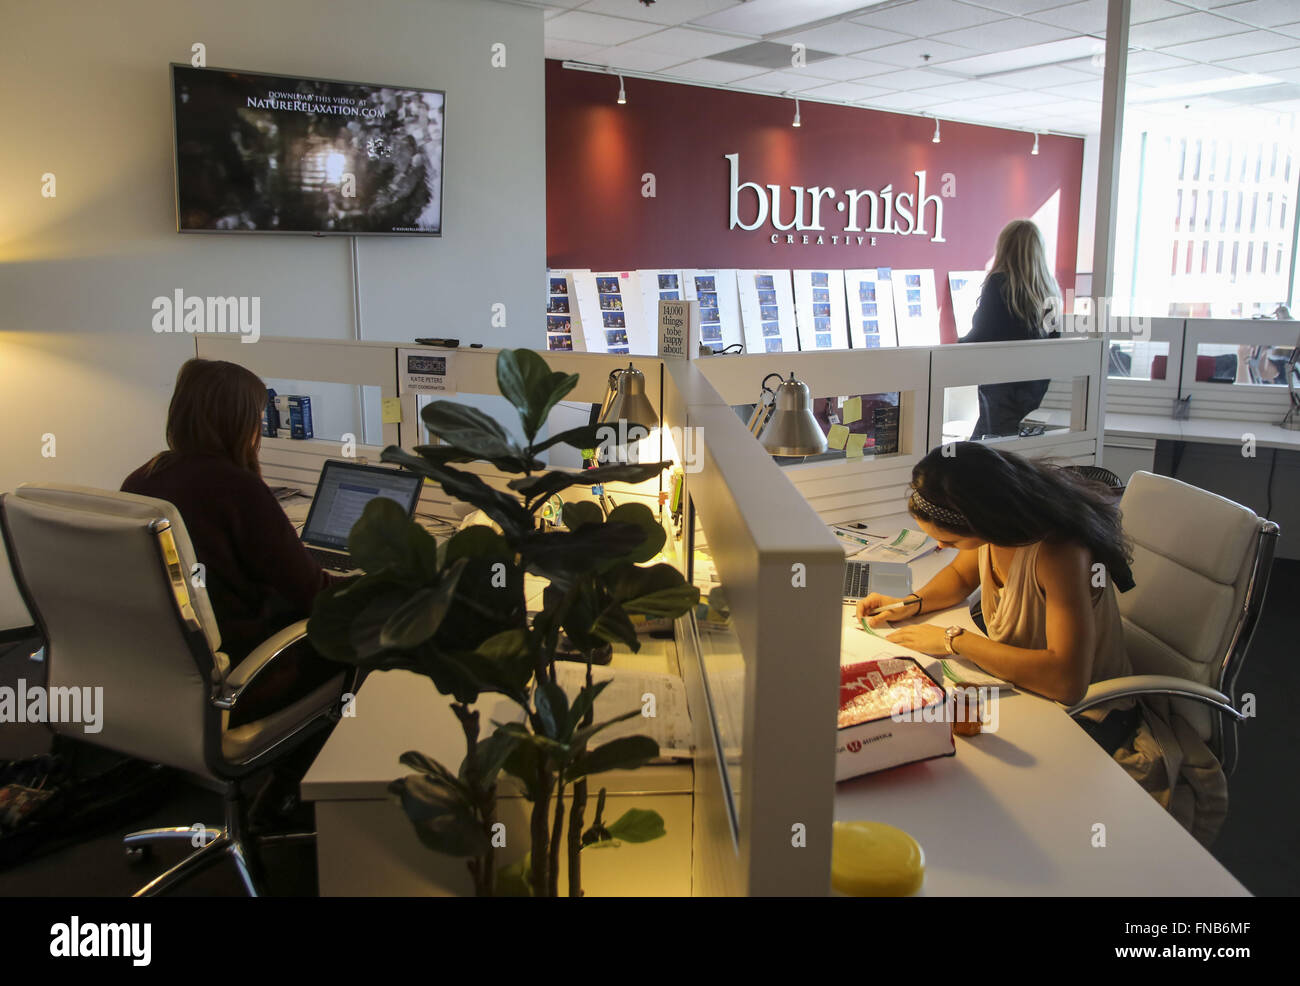 Los Angeles, California, USA. 3rd Feb, 2016. Staff of Burnish Creative at their firm's new office on the Miracle - Stock Image